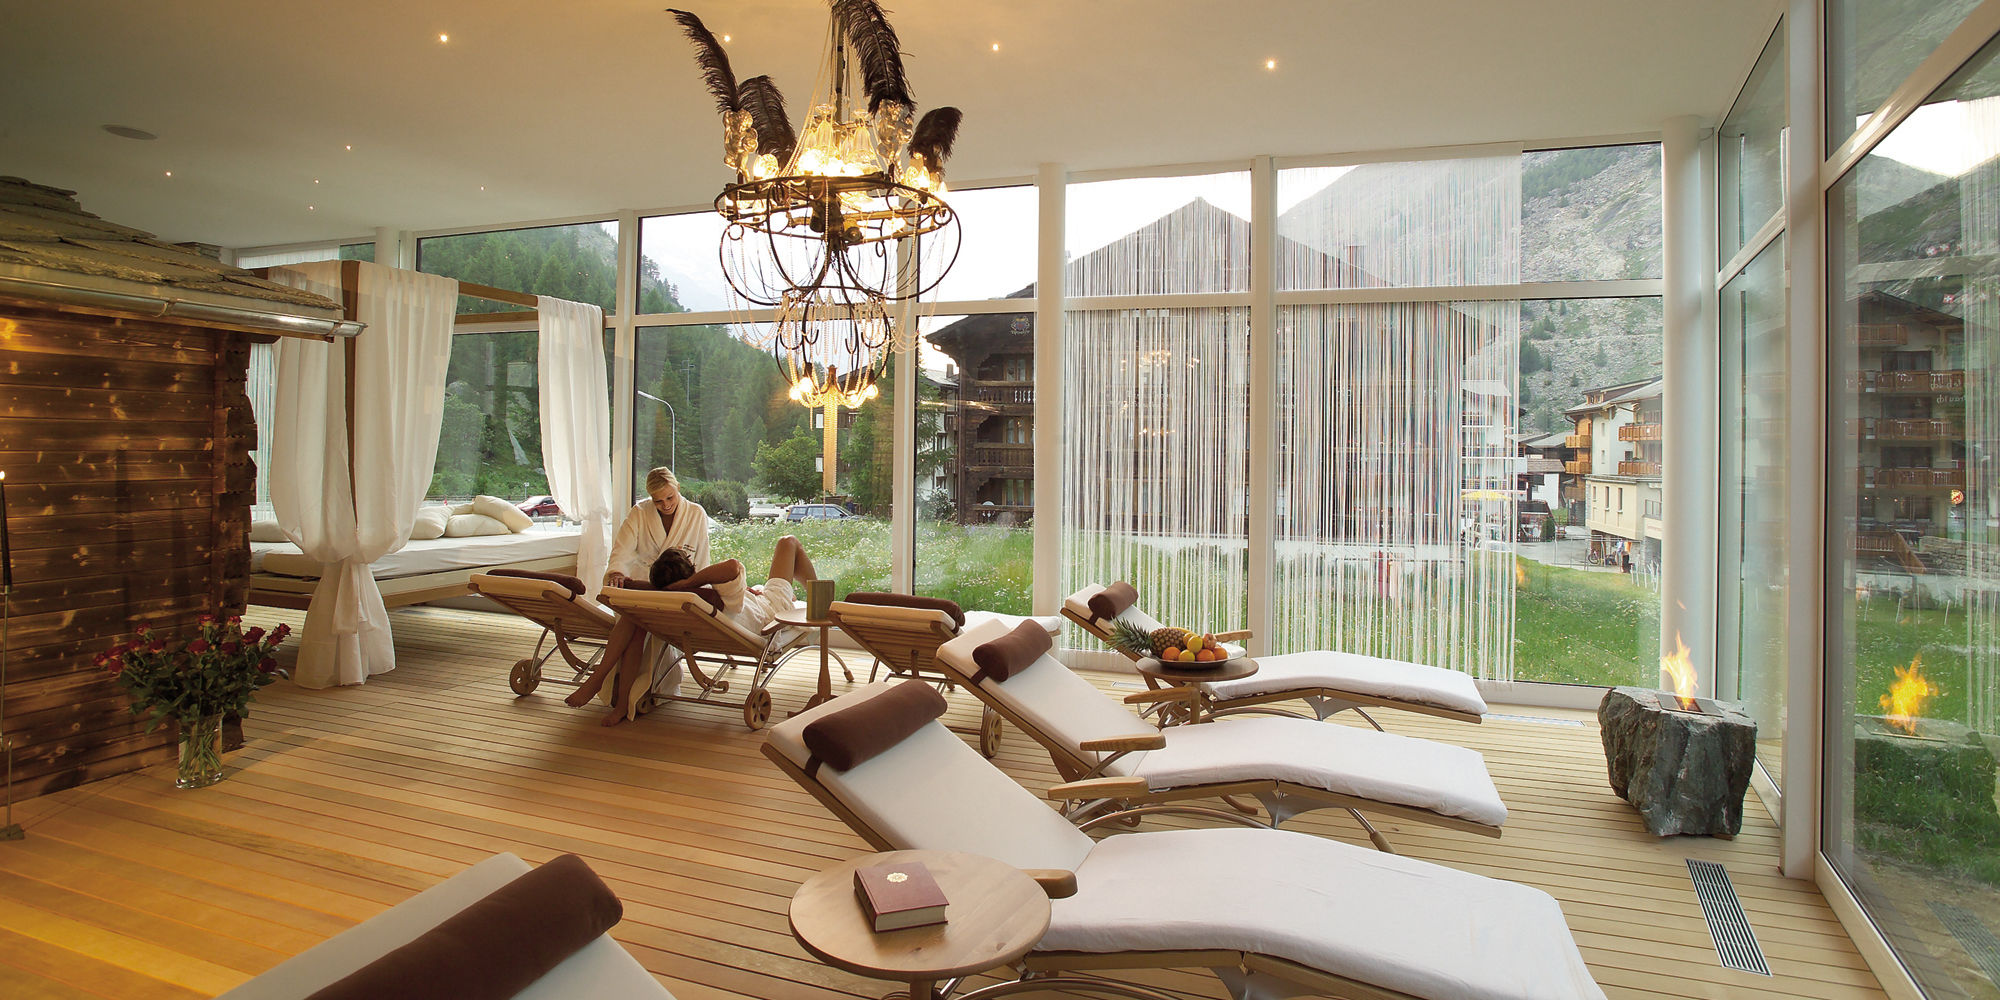 Wellness & Spa Pirmin Zurbriggen in the Free Republic of Holidays Saas-Fee